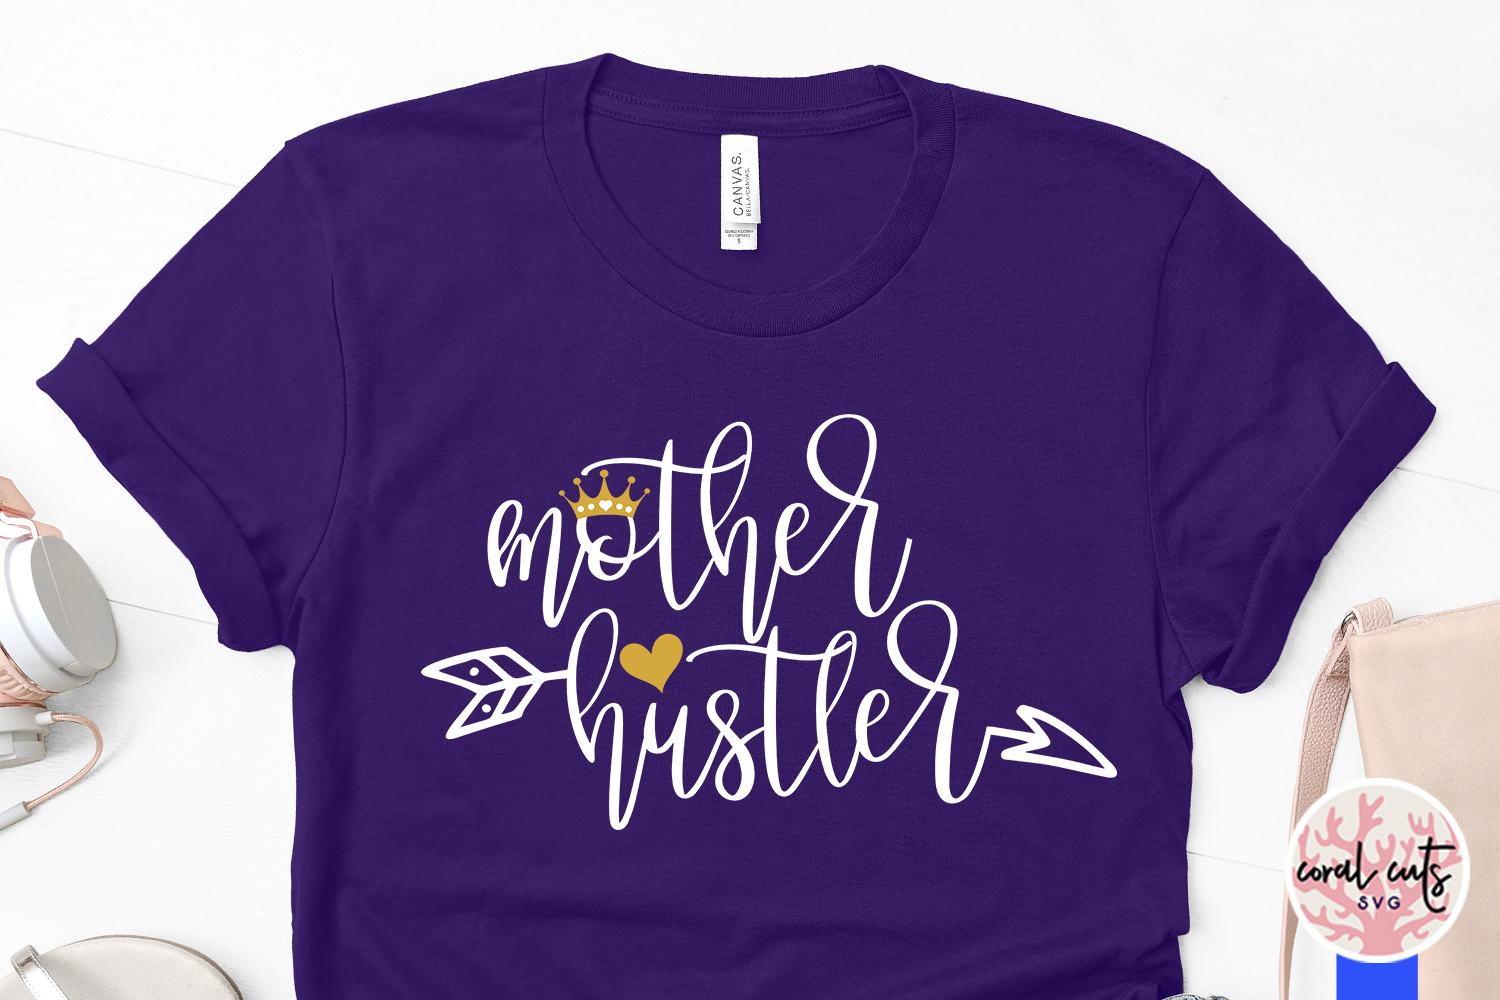 Mother hustler - Mother SVG EPS DXF PNG Cutting File example image 3